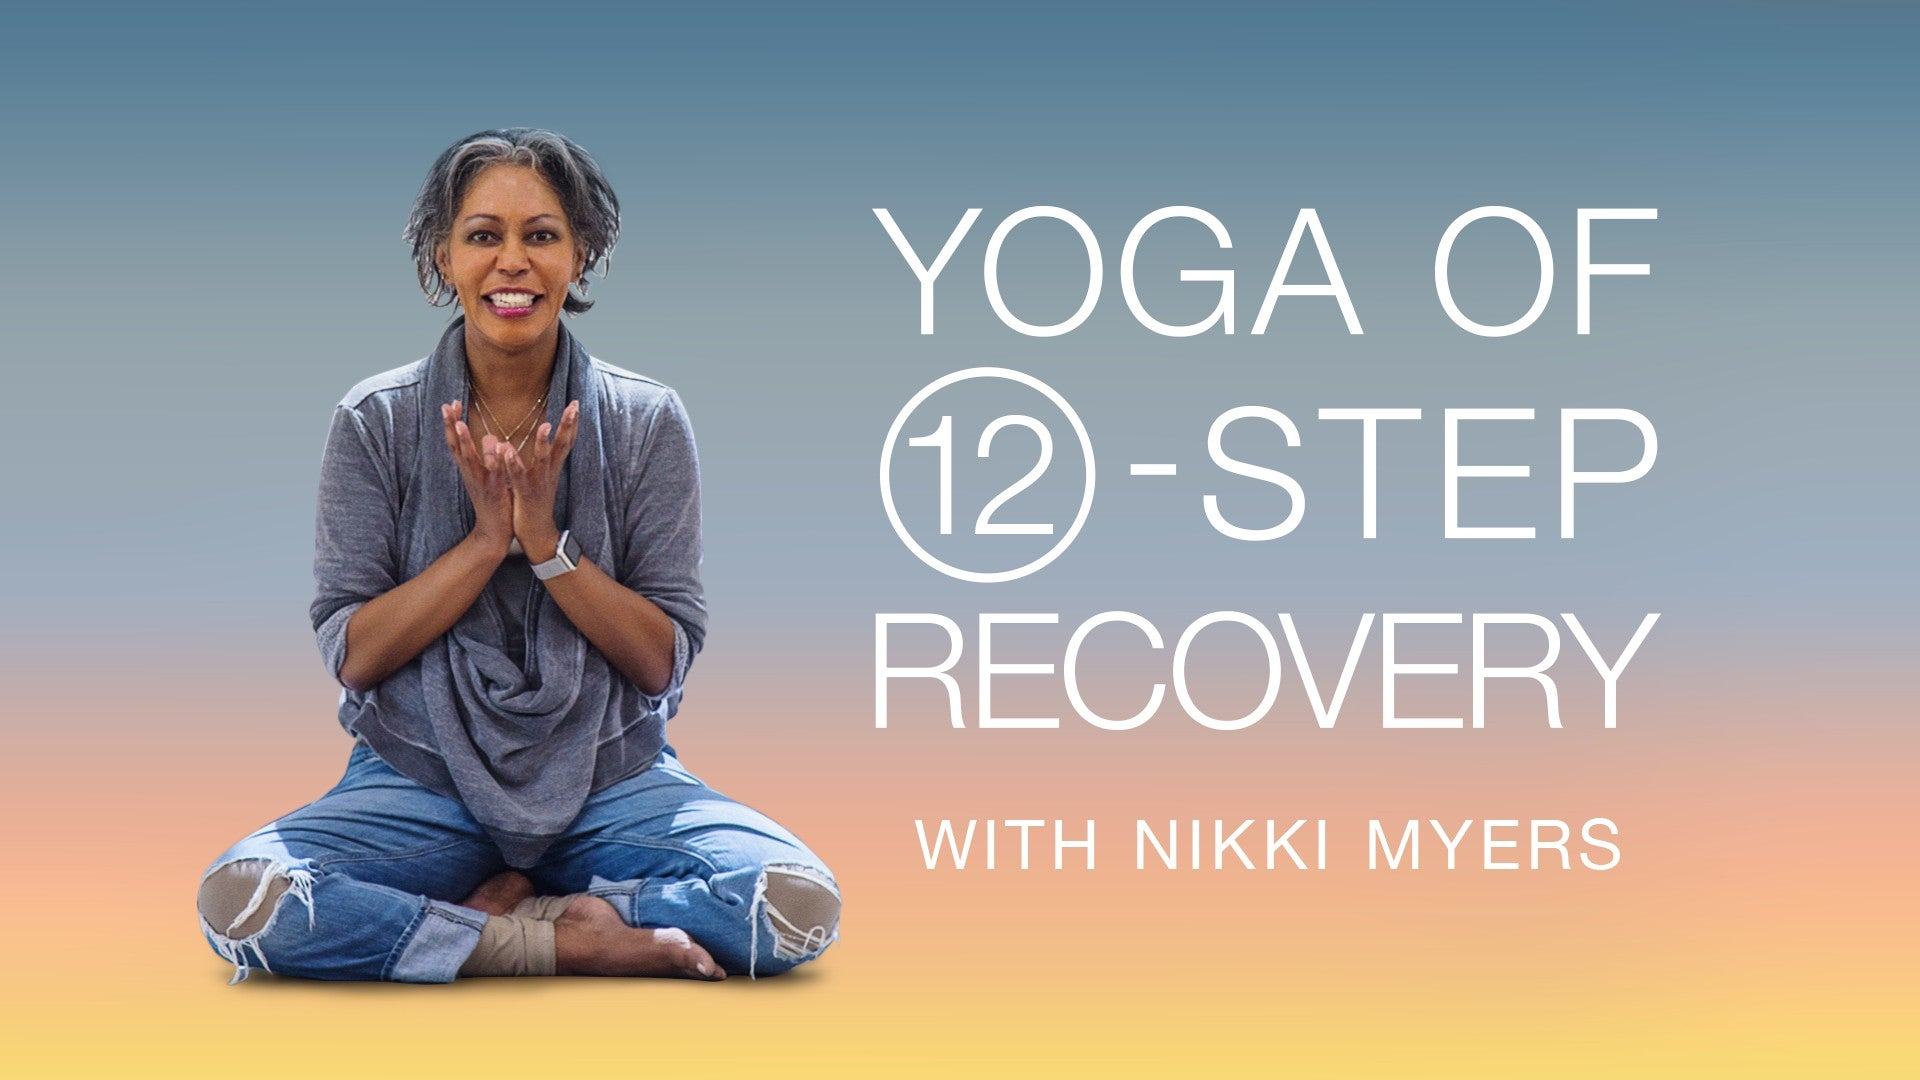 Yoga of 12-Step Recovery Artwork